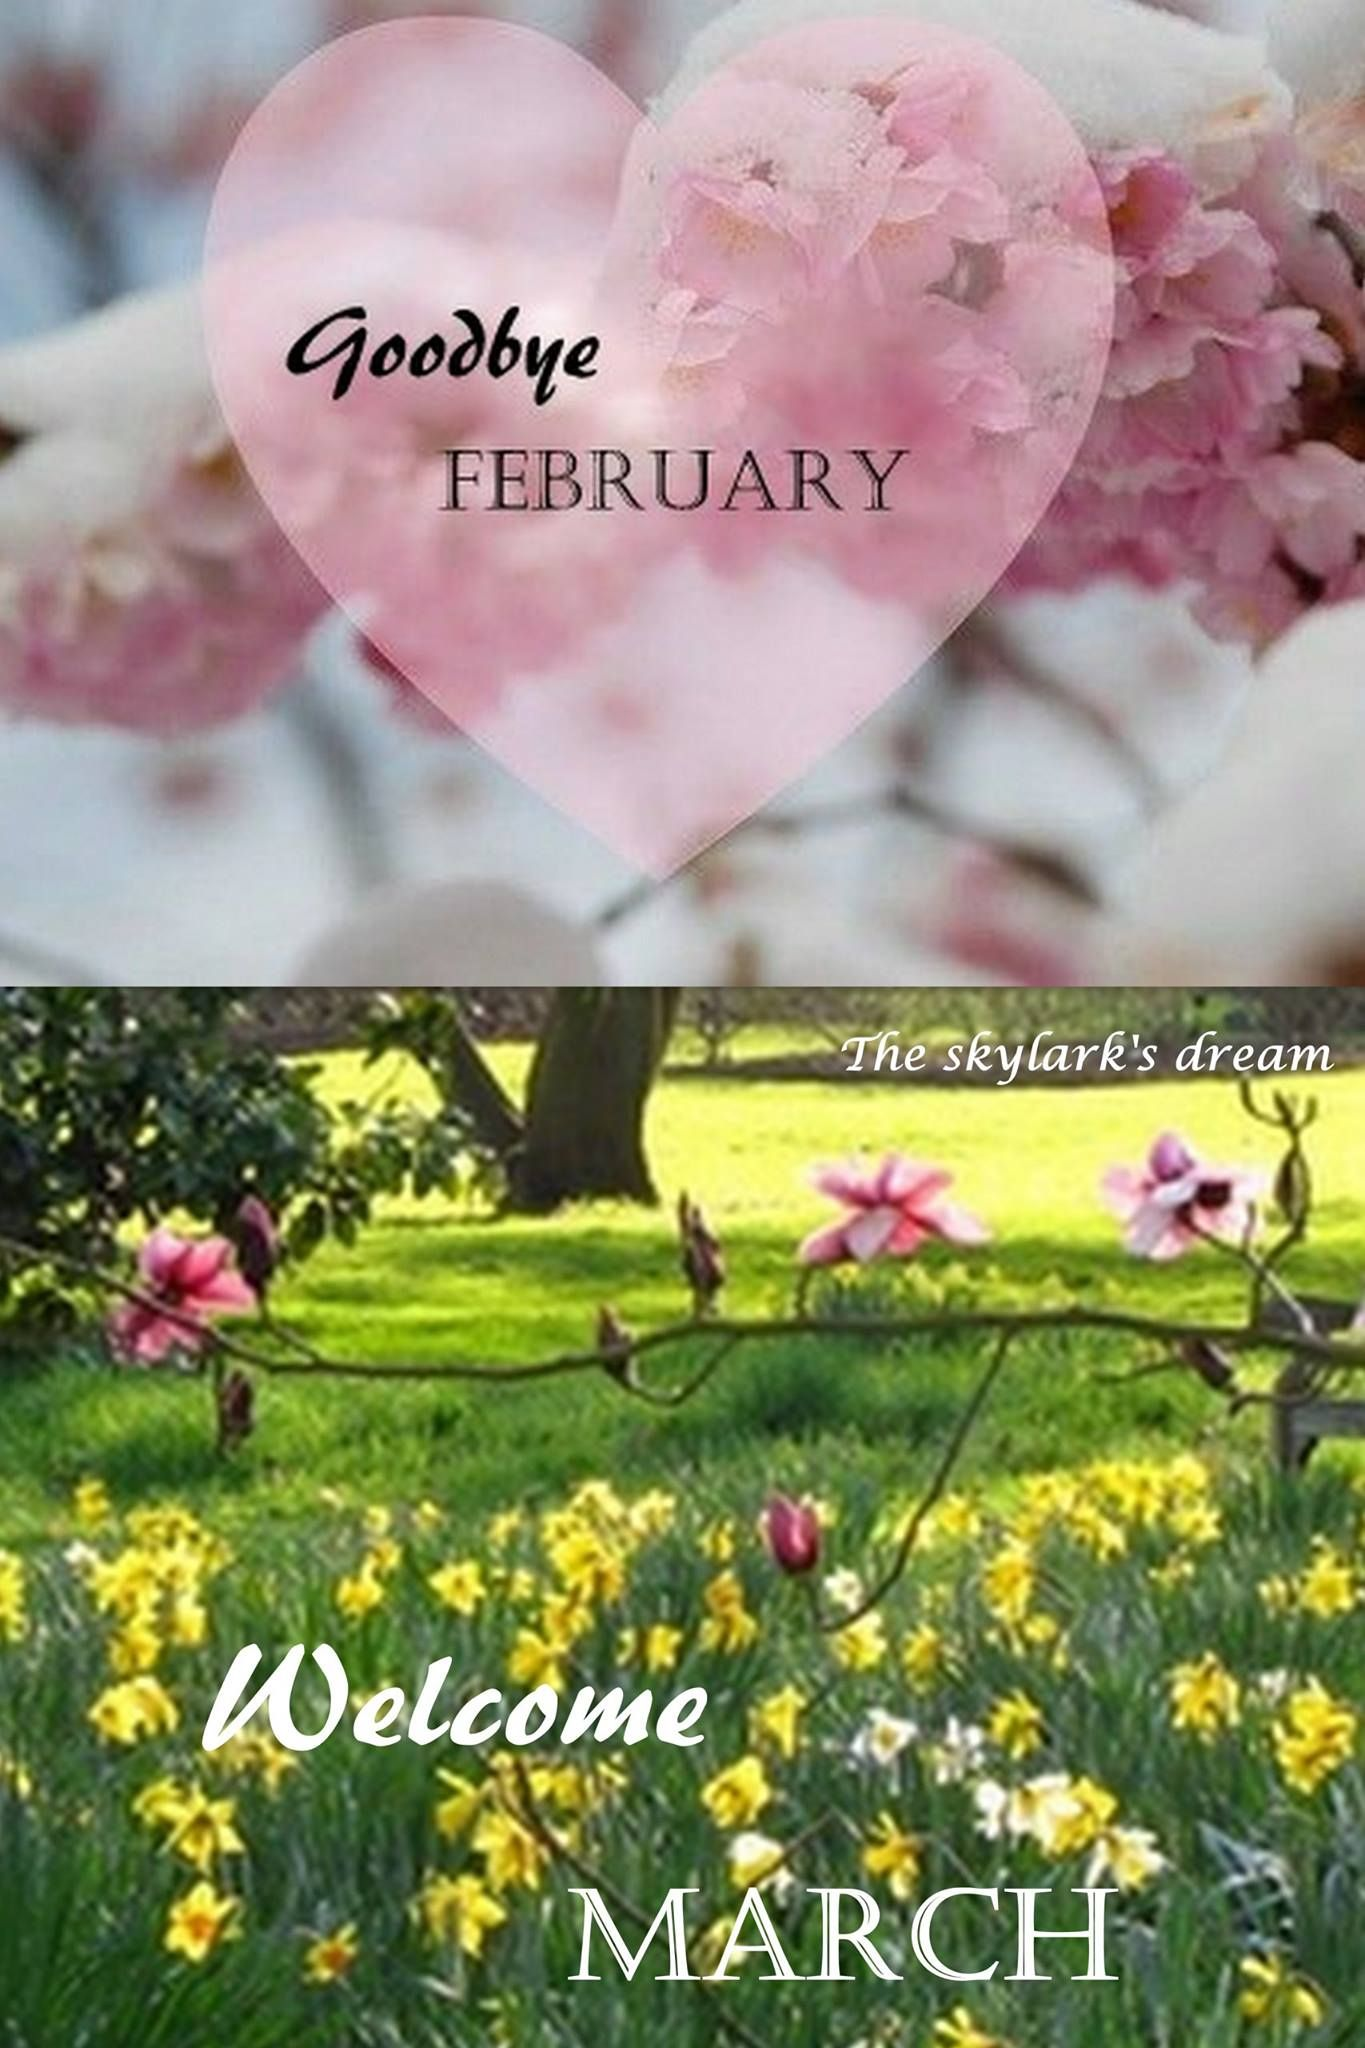 Amazing Goodbye February...Welcome March ❤️